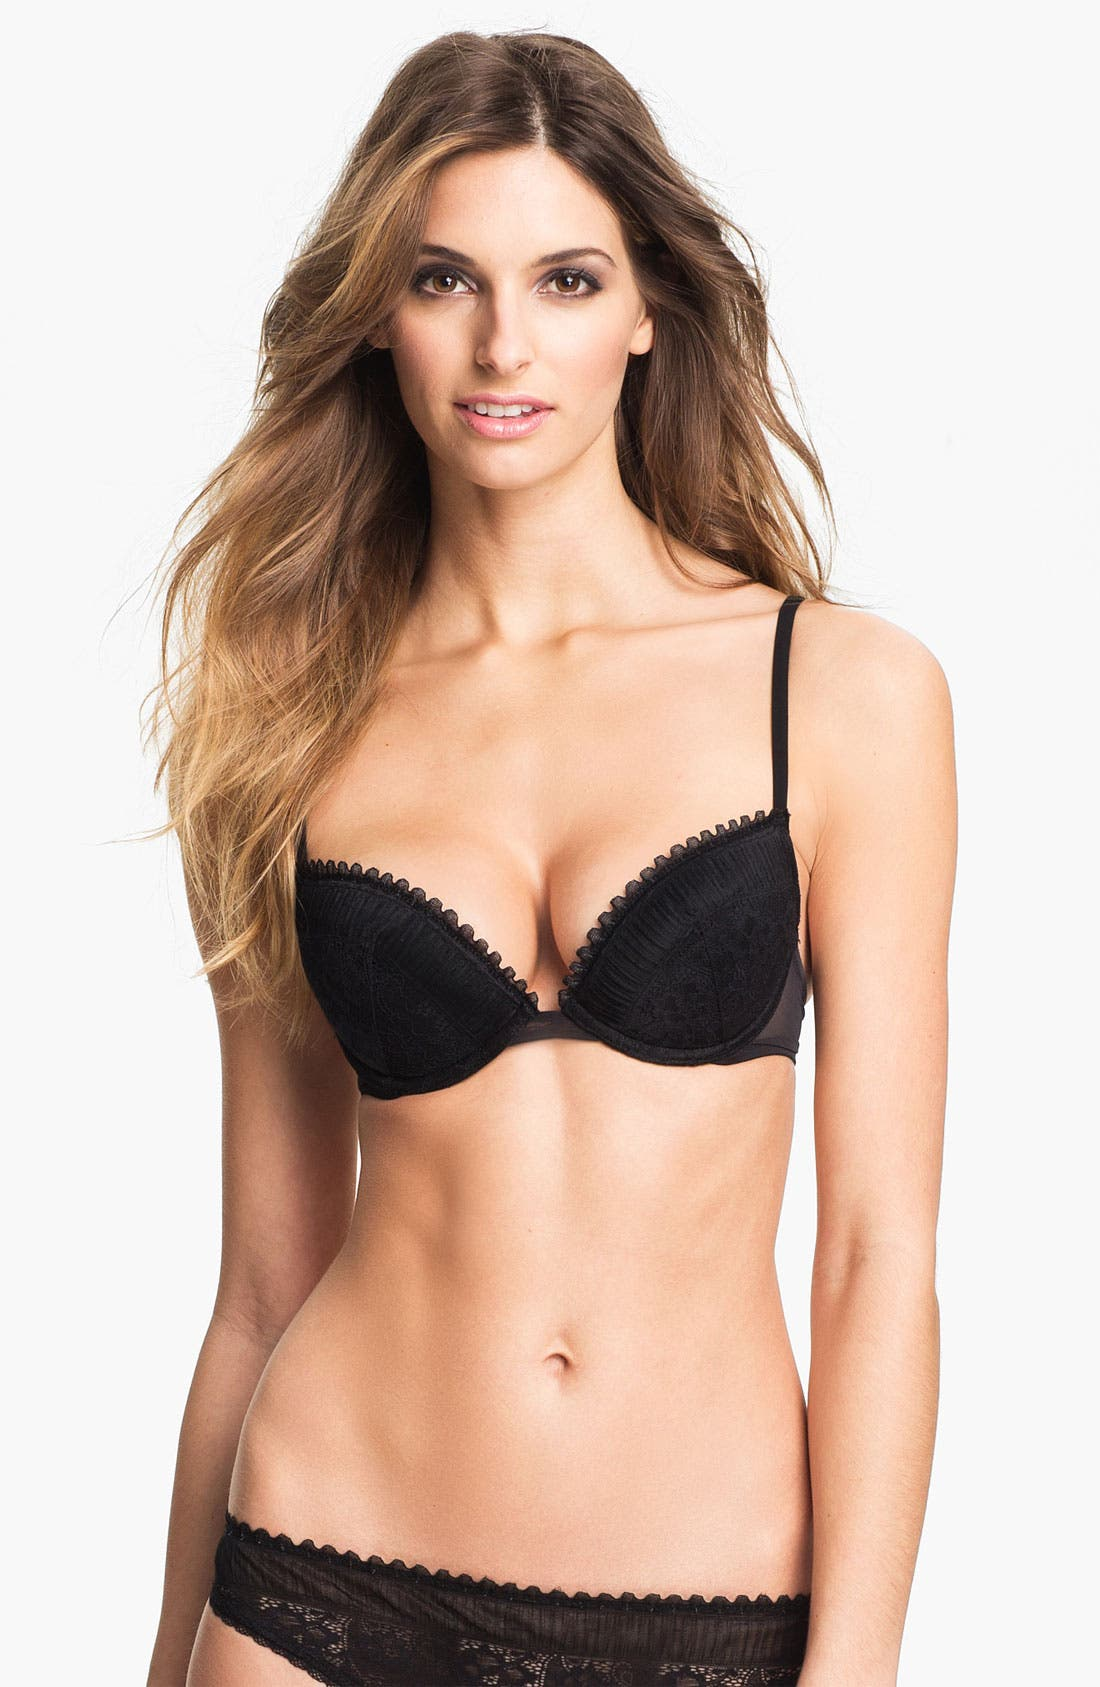 Alternate Image 1 Selected - La Perla 'Looking for Love' Underwire Push-Up Bra